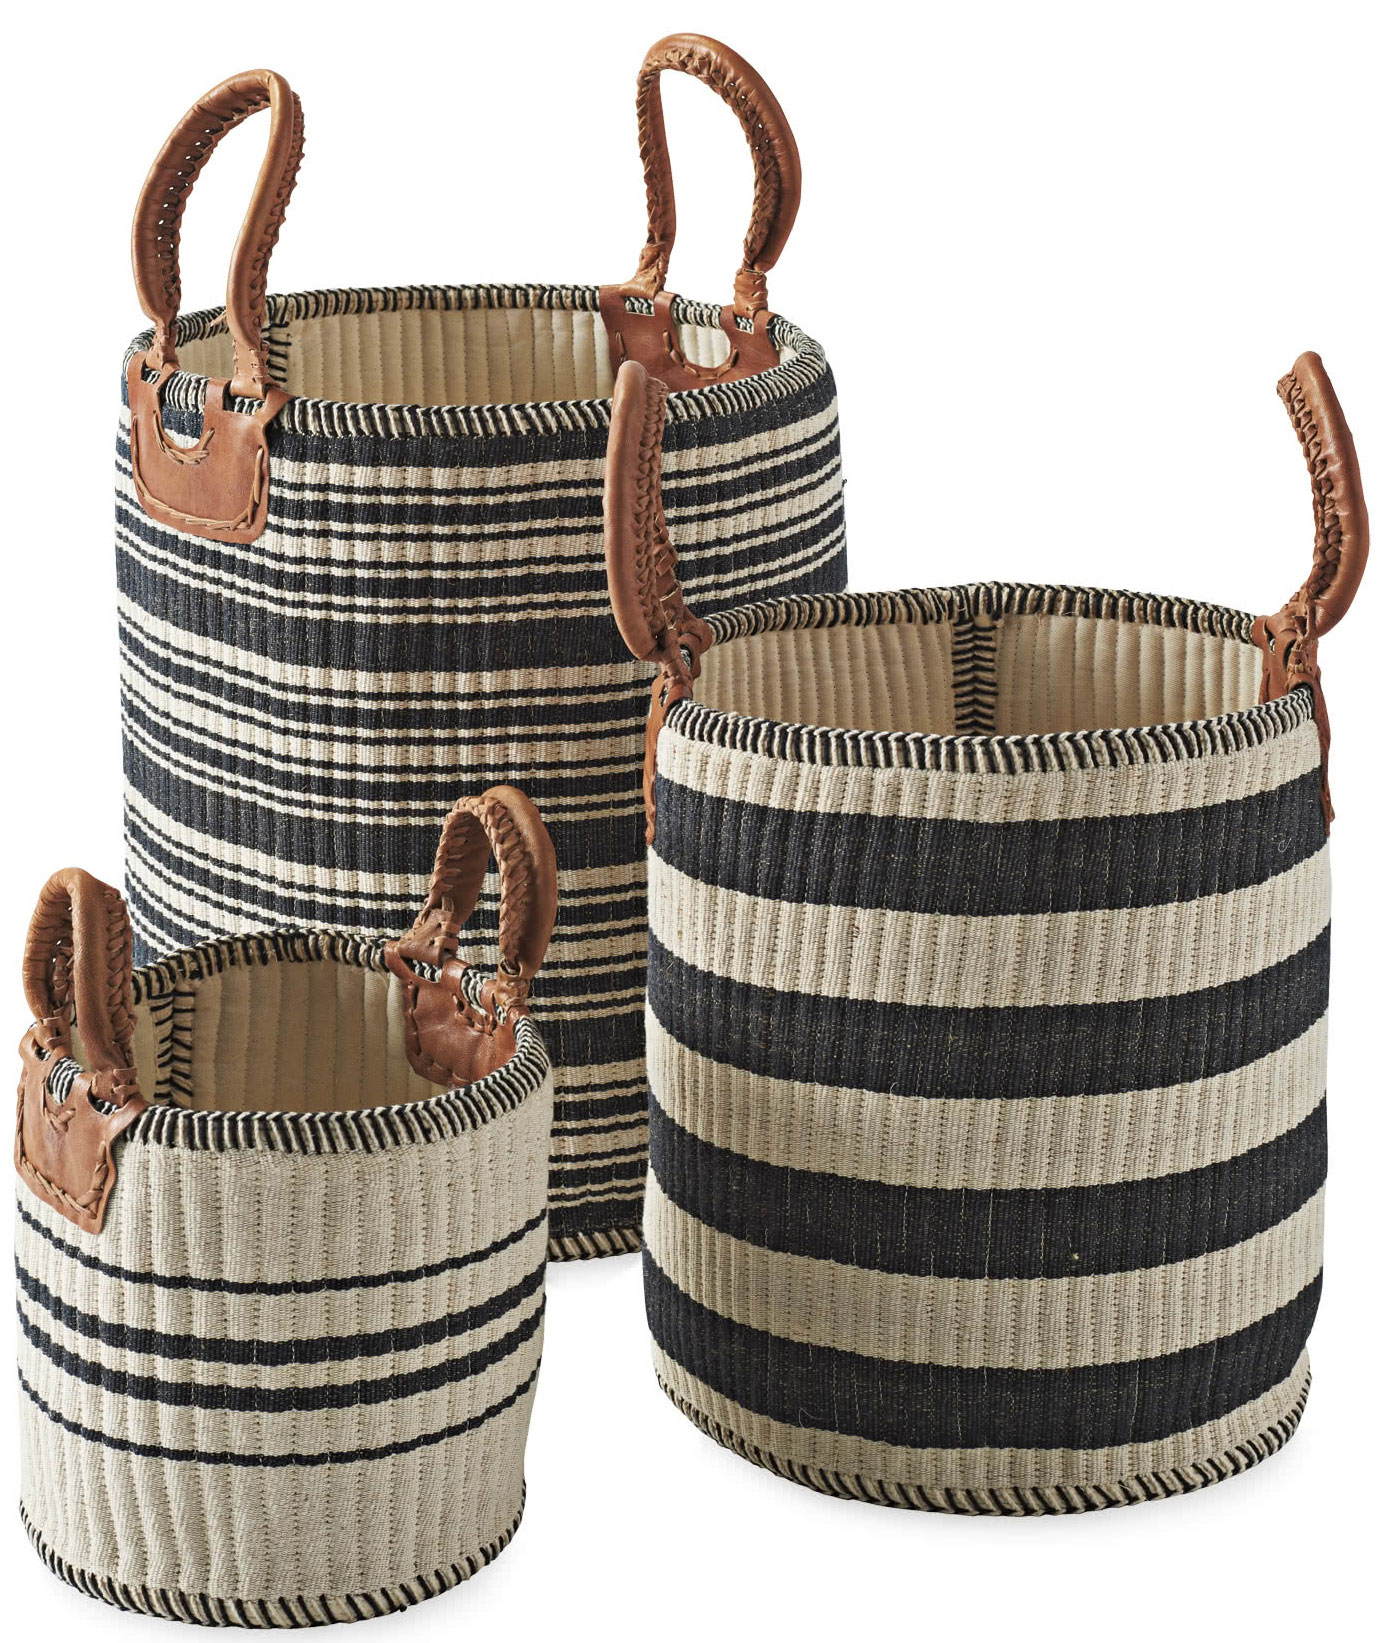 Home Organization Tools Approved by Designers - Beautiful Baskets